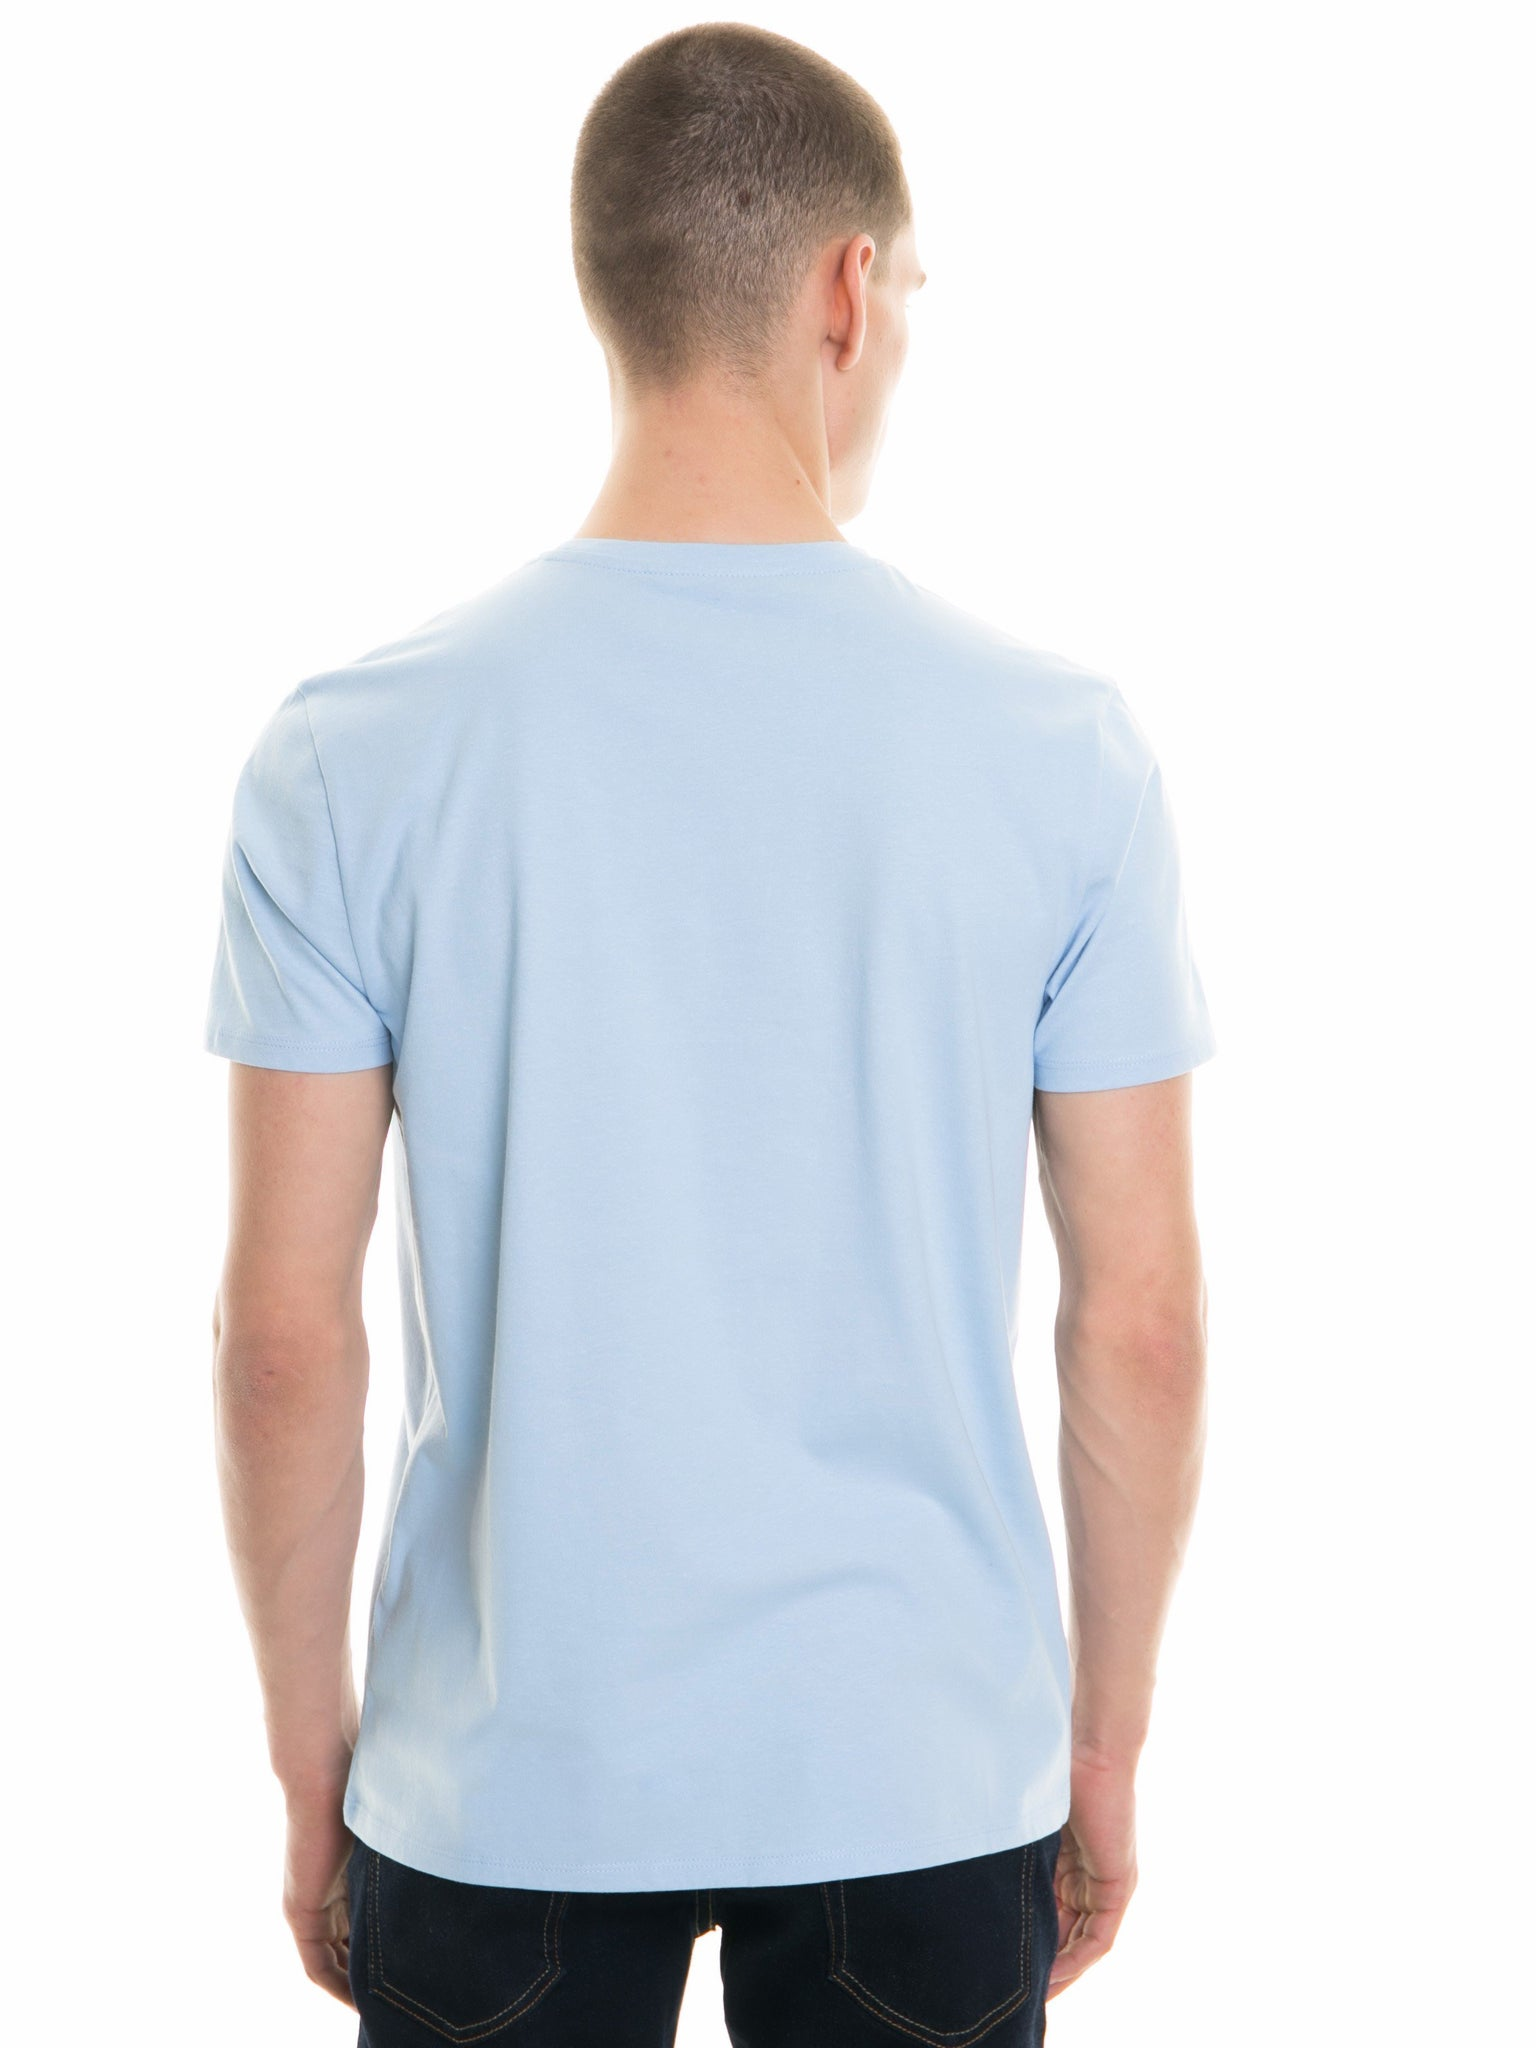 T.Shirt with Print | Light Blue